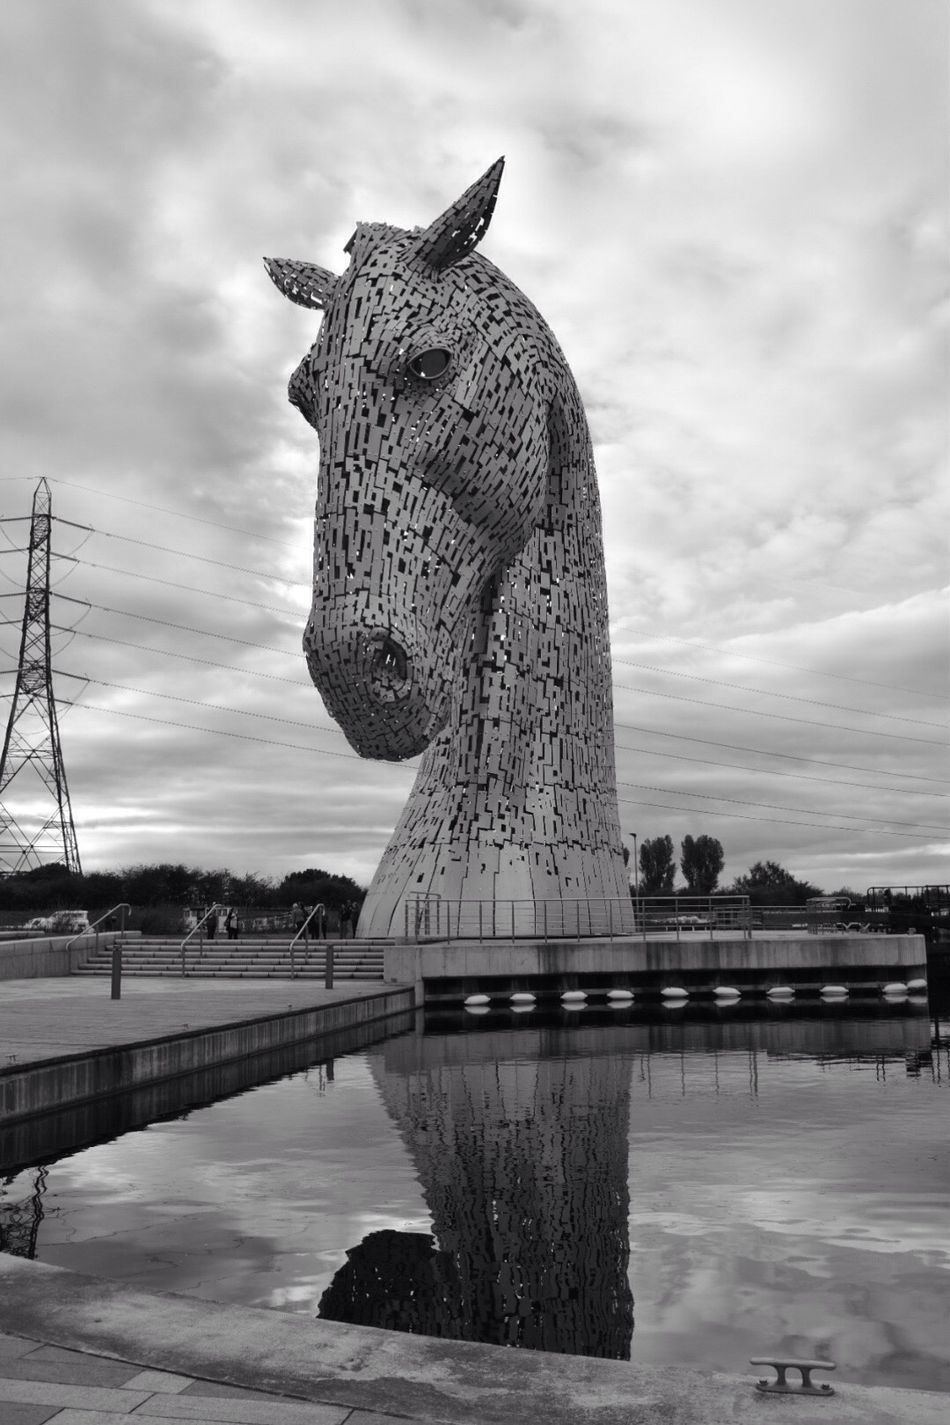 Sky Cloud - Sky Reflection Water Outdoors Architecture Day Kelpie Kelpies Of Falkirk Sculpture Statue Tree Nature Blackandwhite Photography